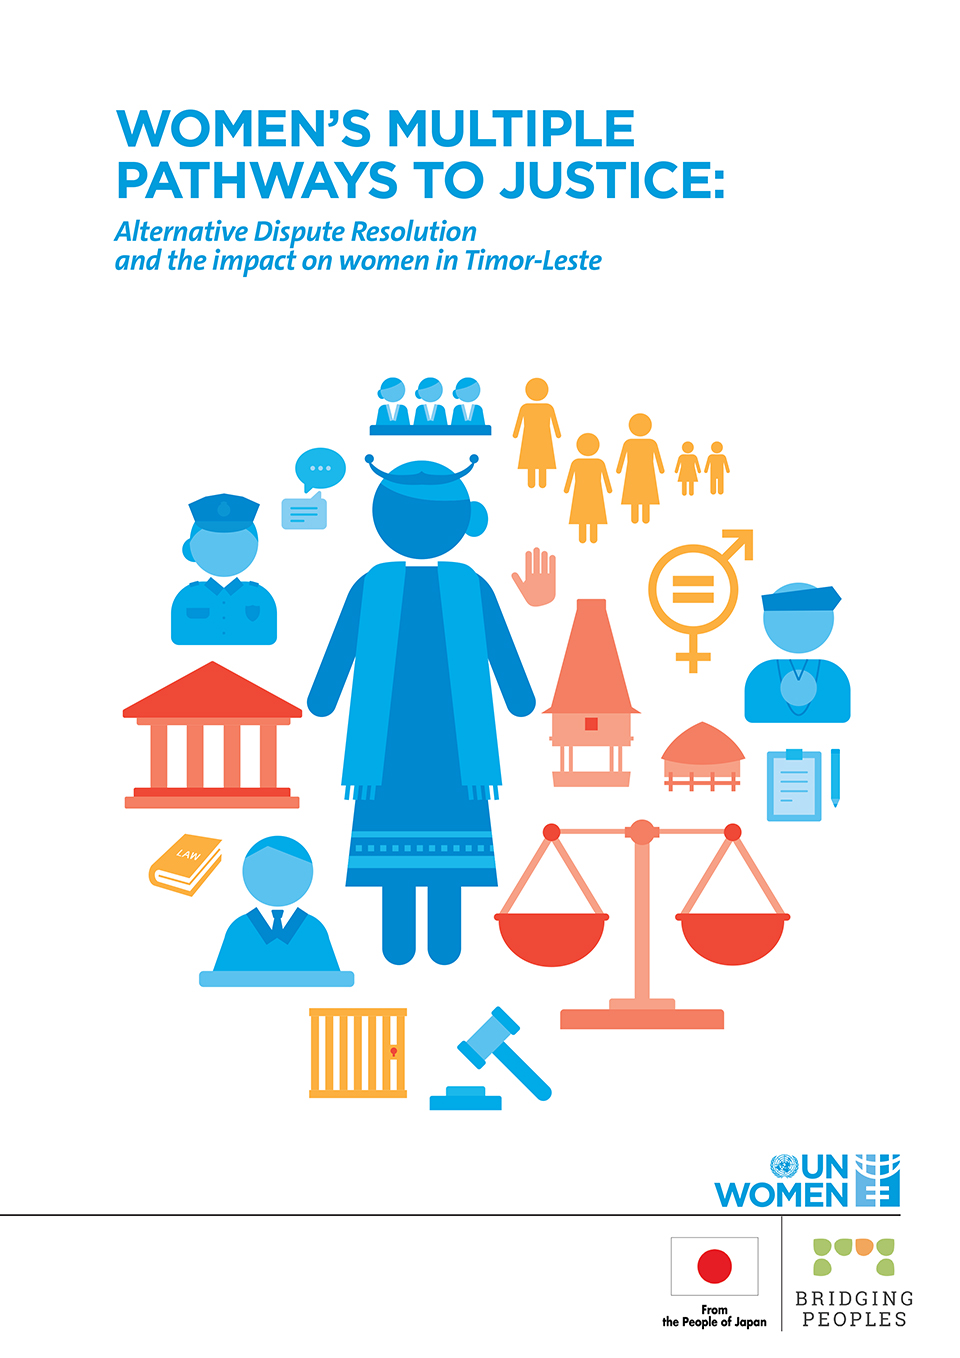 Alternative Dispute Resolution and the Impact on Women in Timor-Leste